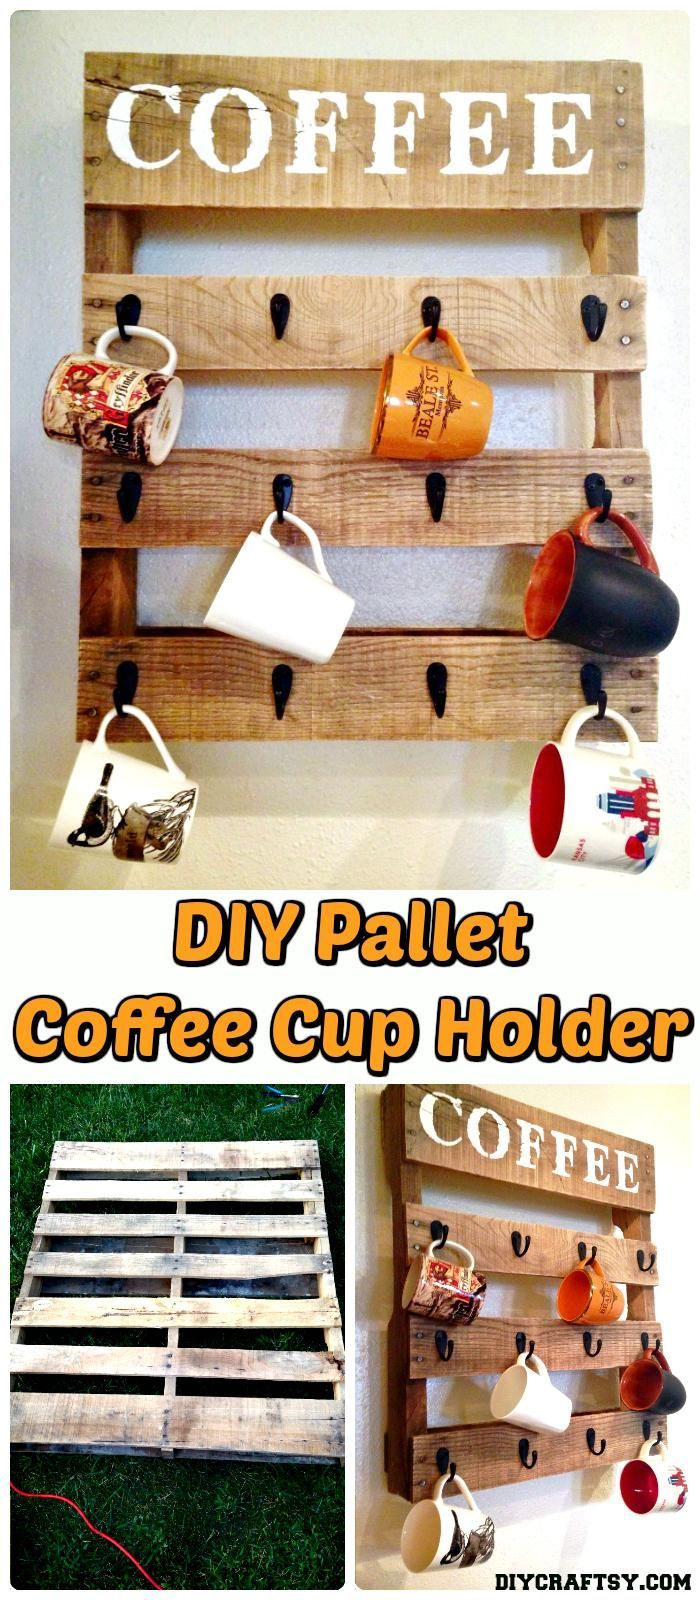 Wooden Pallet Coffee Cup Rack - 150 Best DIY Pallet Projects and Pallet Furniture Crafts - Page 8 of 75 - DIY & Crafts